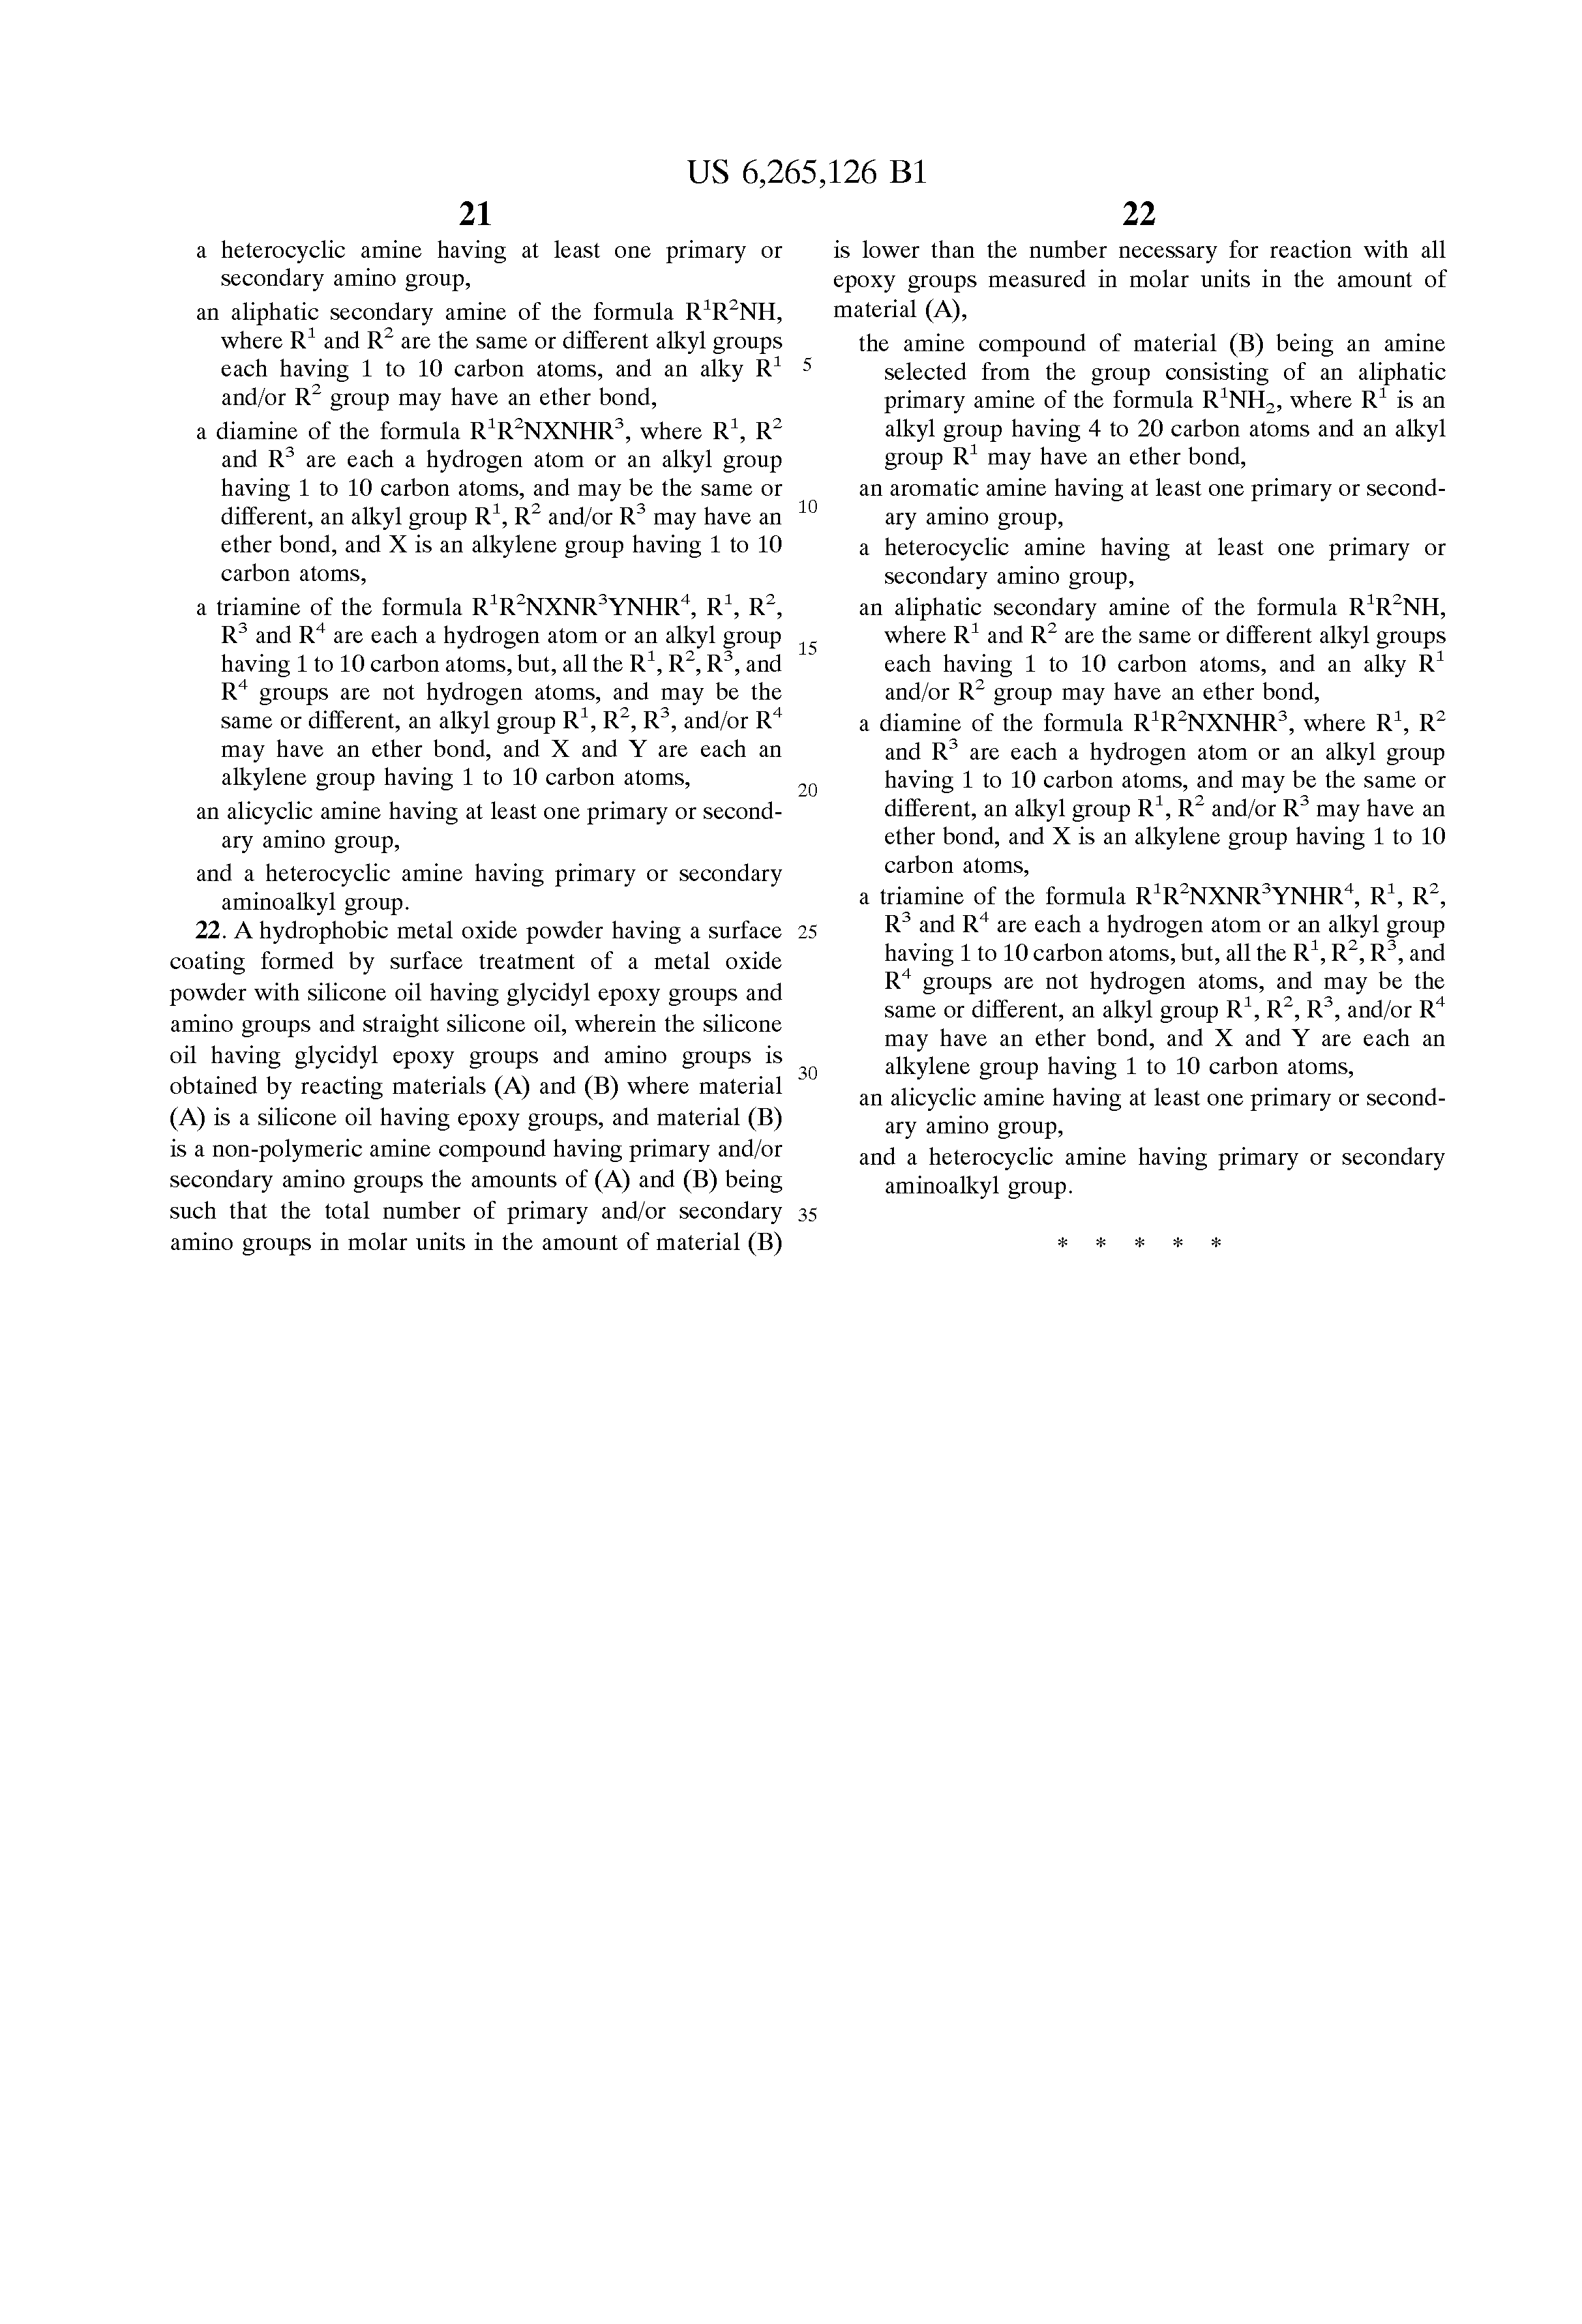 Patent US6265126 - Hydrophobic metal oxide powder and